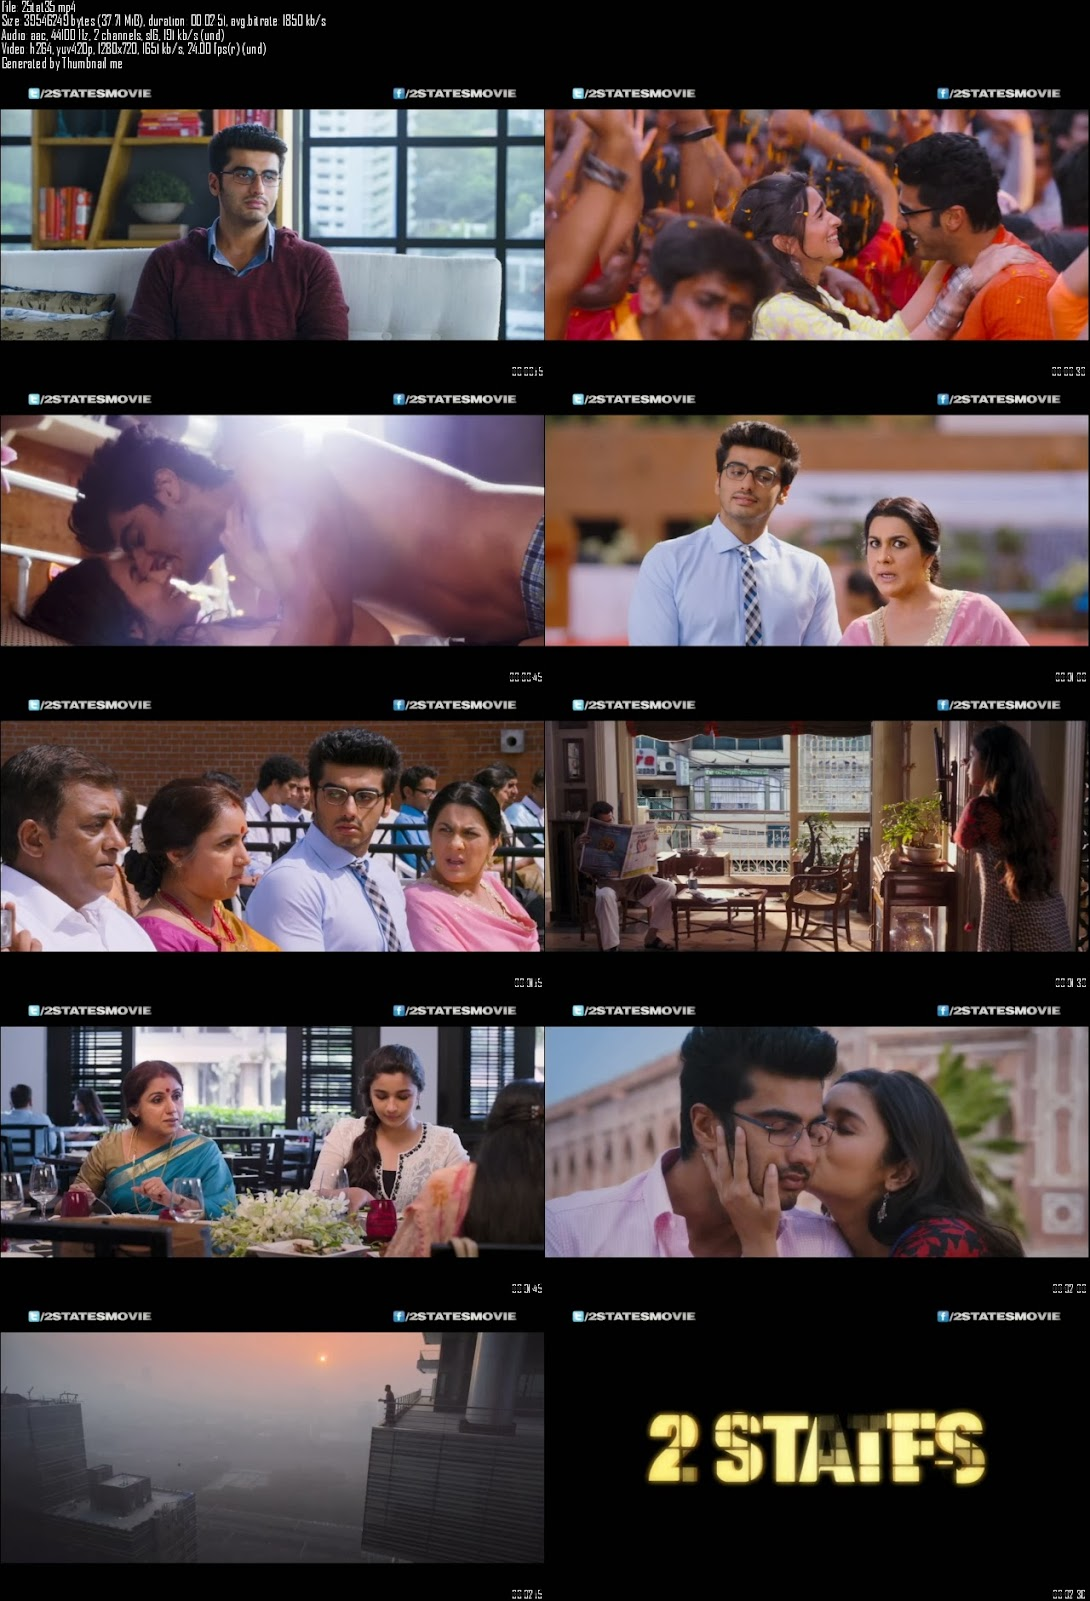 Mediafire Resumable Download Link For Teaser Promo Of 2 States (2014)